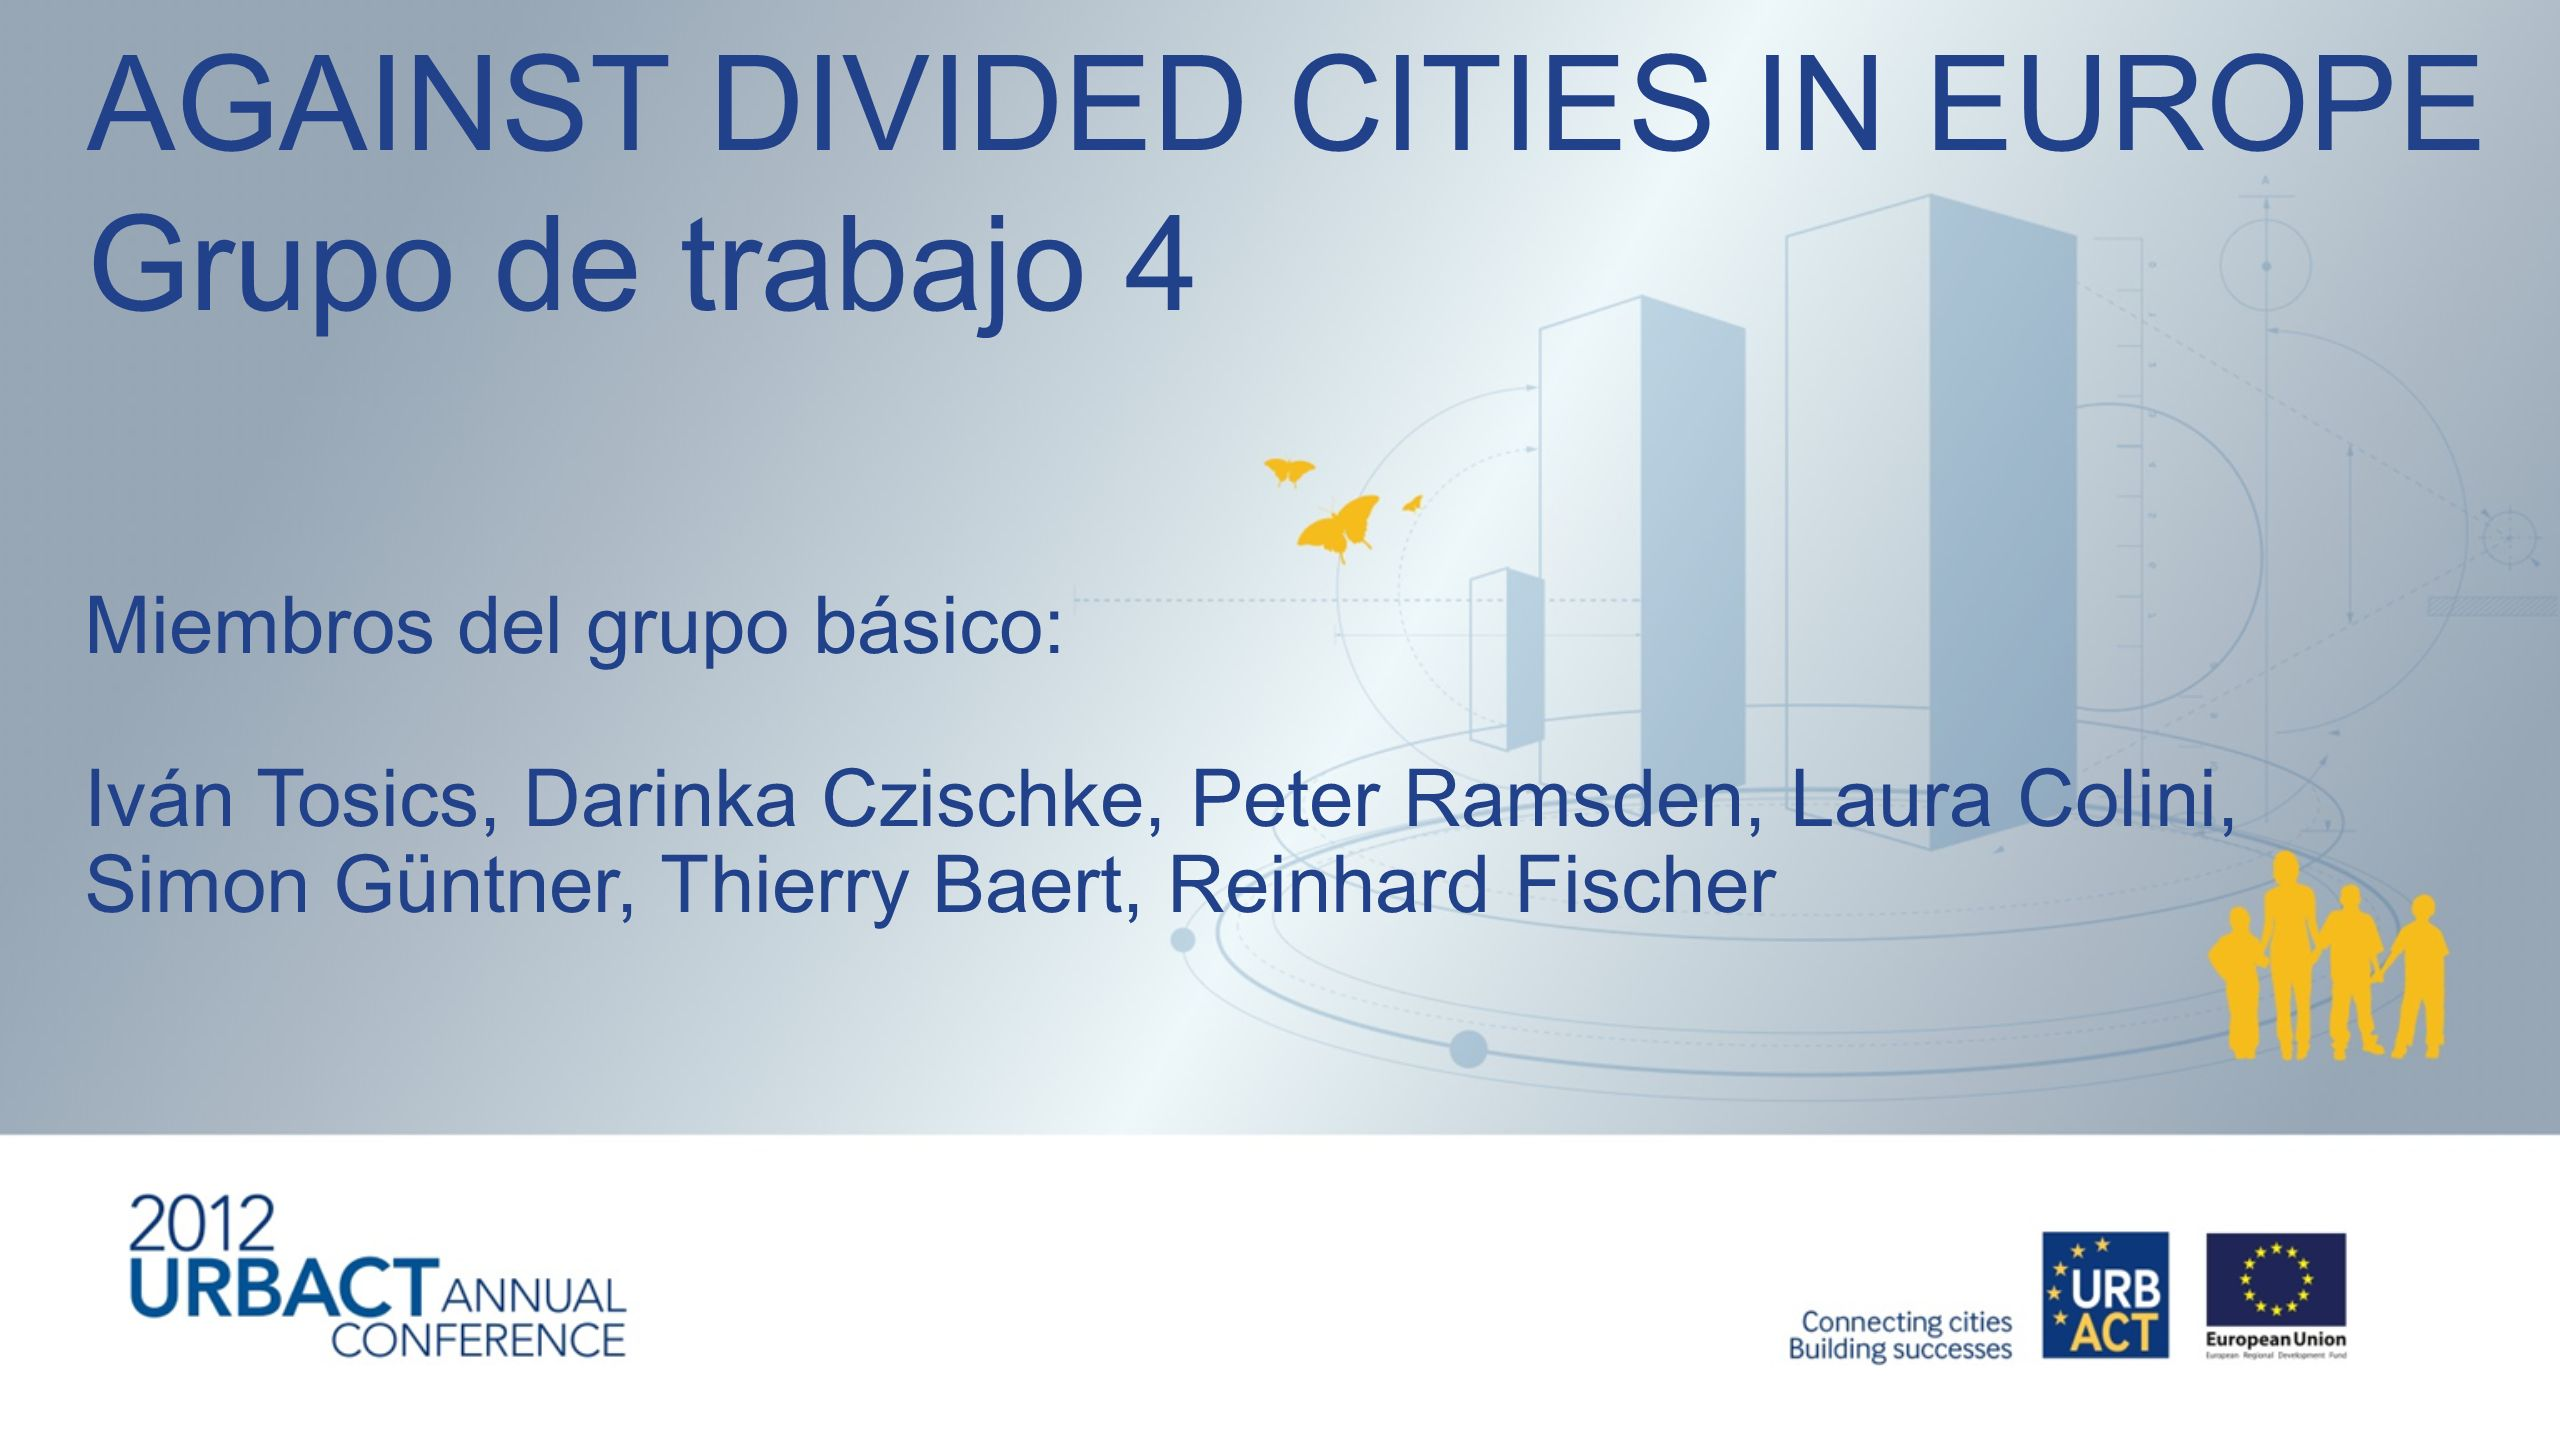 AGAINST DIVIDED CITIES IN EUROPE Grupo de trabajo 4